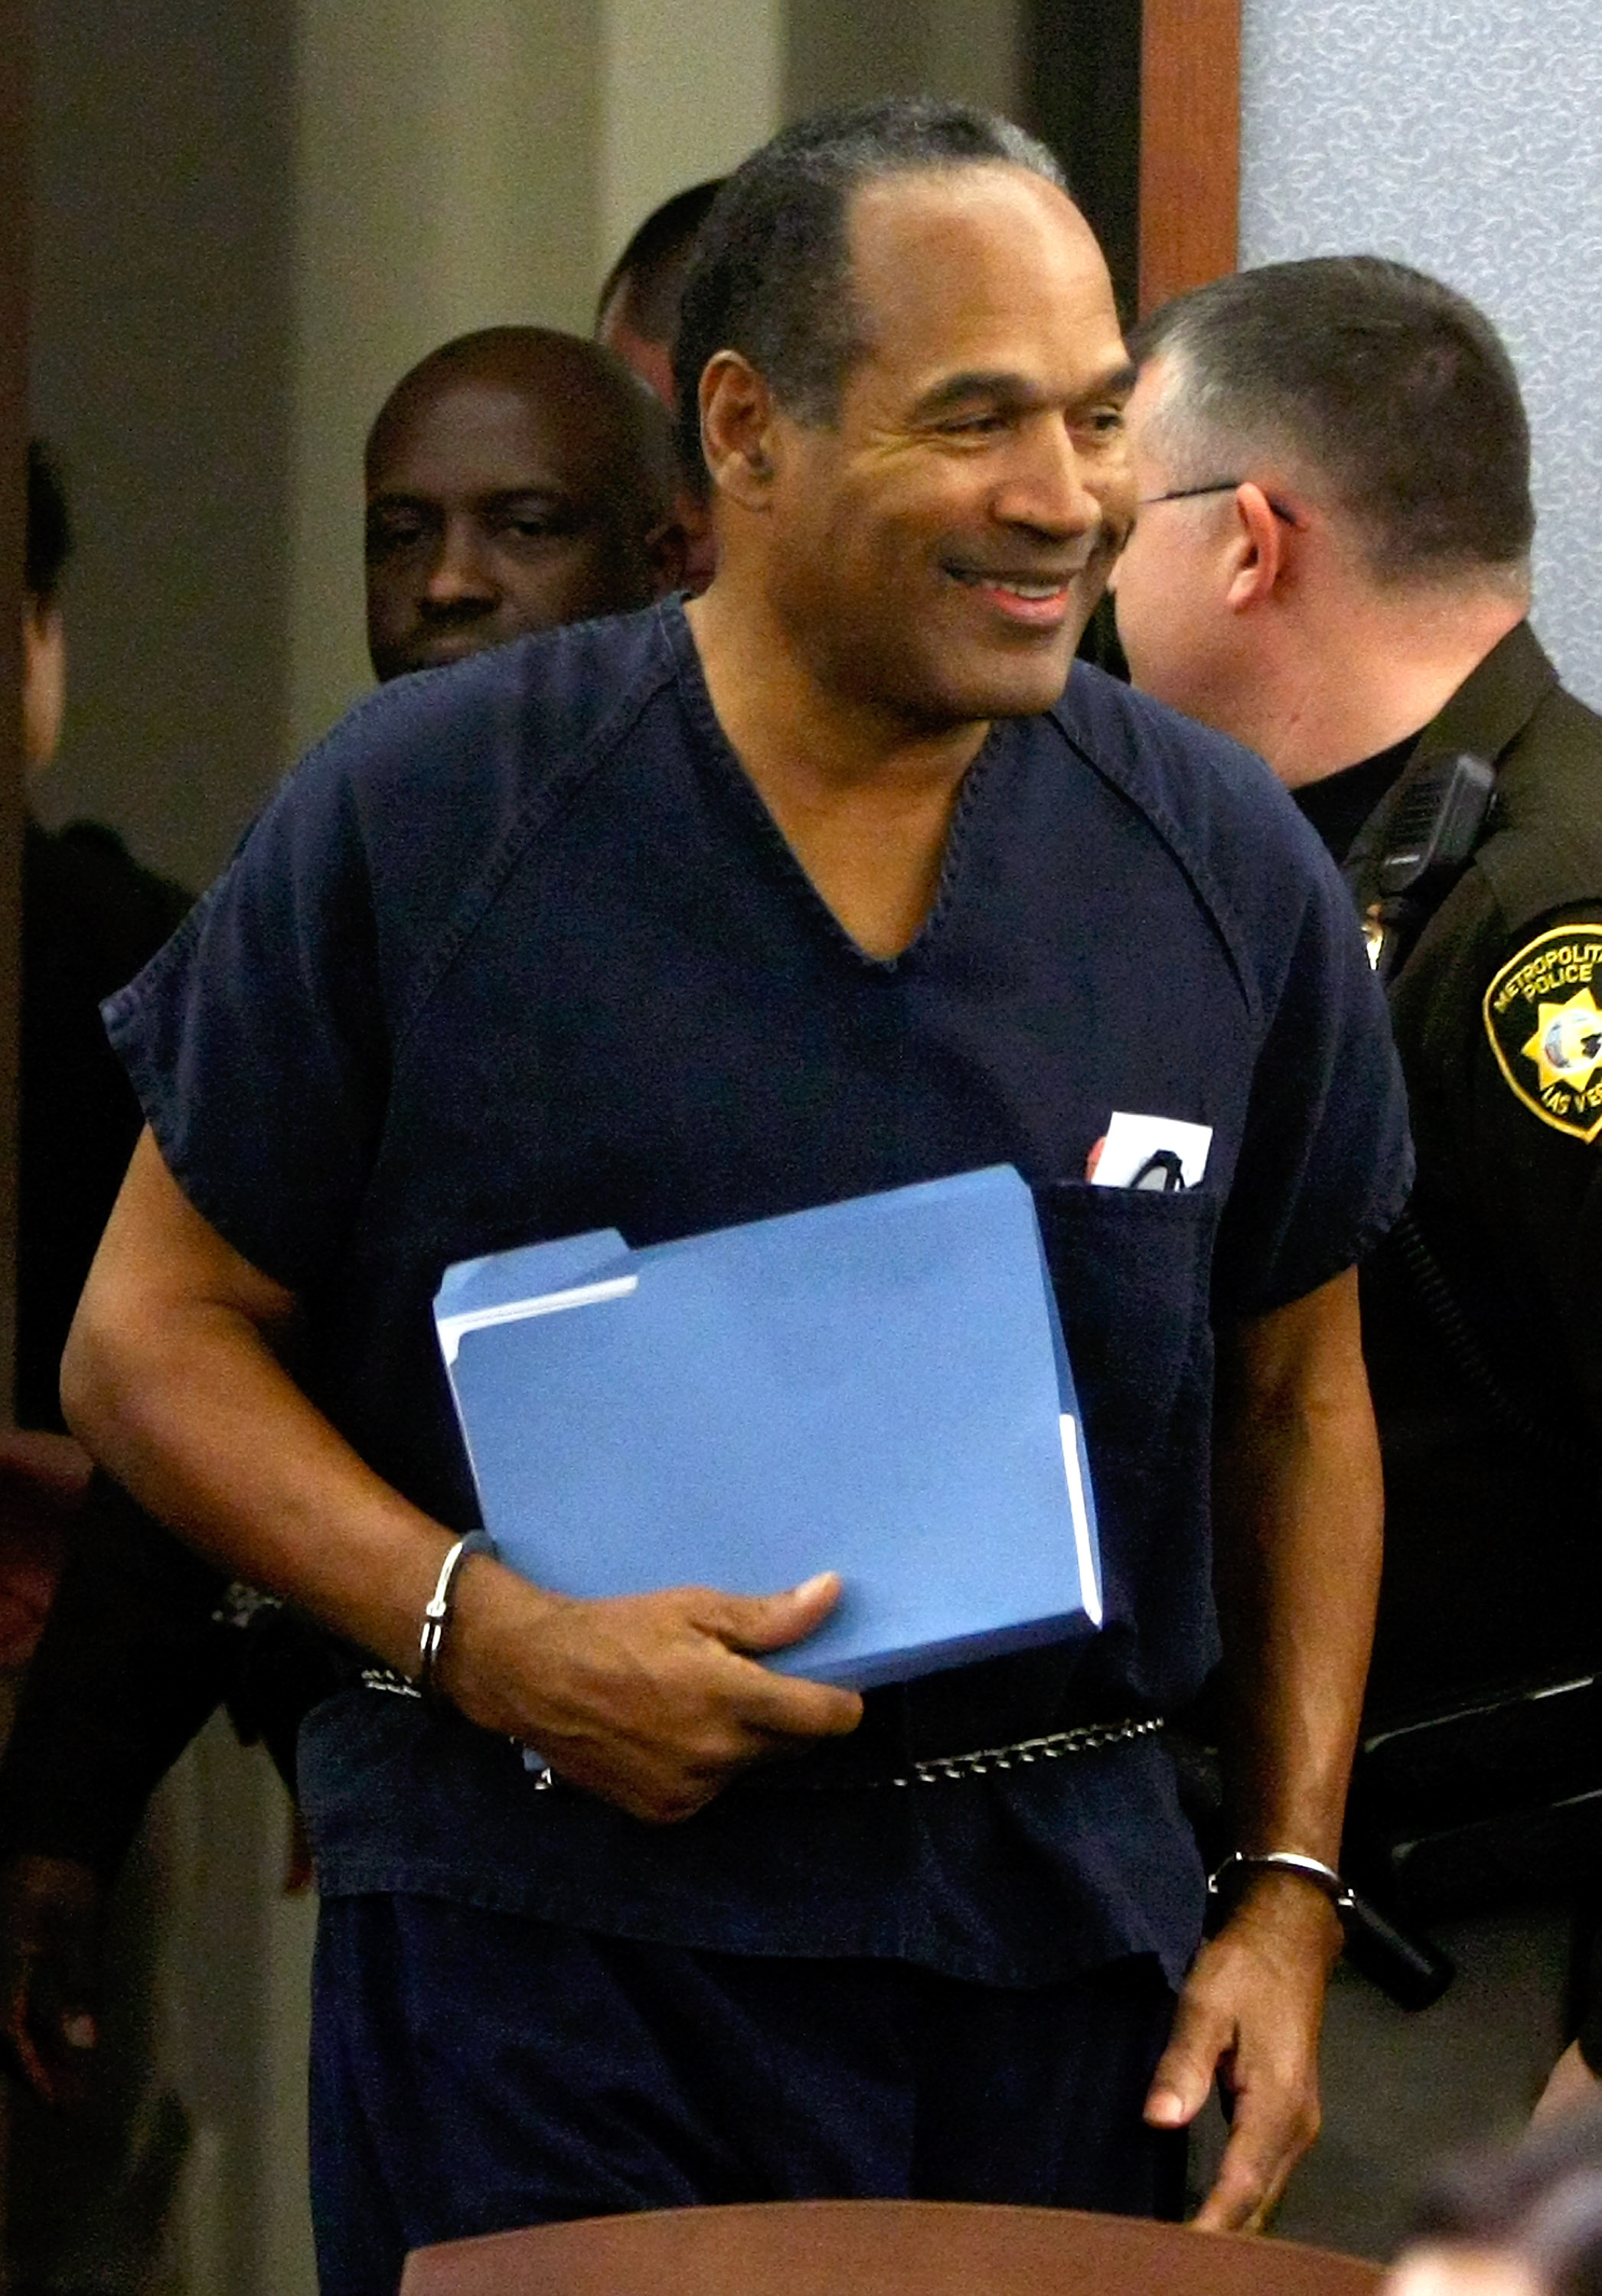 LAS VEGAS - DECEMBER 05:  O.J. Simpson smiles as he arrives in court for his sentencing hearing at the Clark County Regional Justice Center December 5, 2008 in Las Vegas, Nevada. Simpson and co-defendant Clarence 'C.J.' Stewart were sentenced on 12 charge